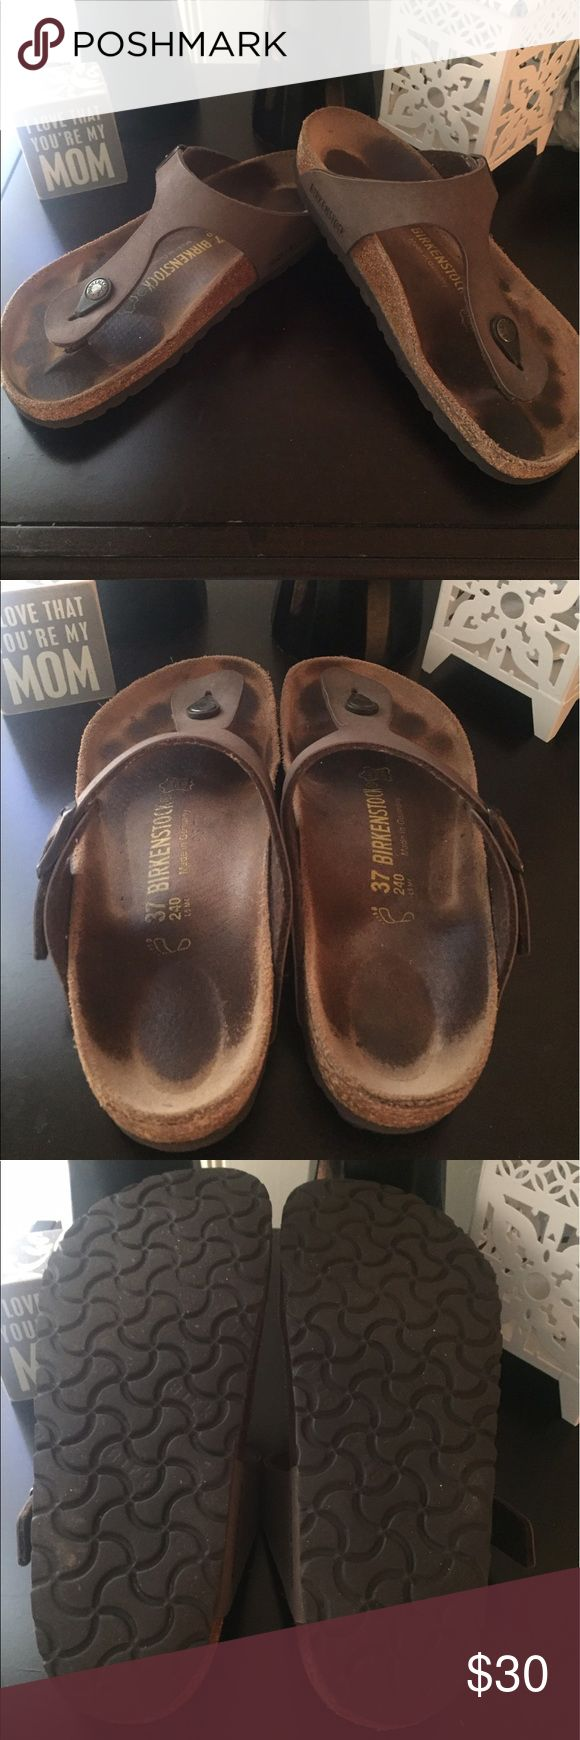 Birkenstock Gizeh mocca color size 37 This is a classic style that's very popular right now. Super comfortable. And these have A LOT of great wear in them! Birkenstock Shoes Sandals